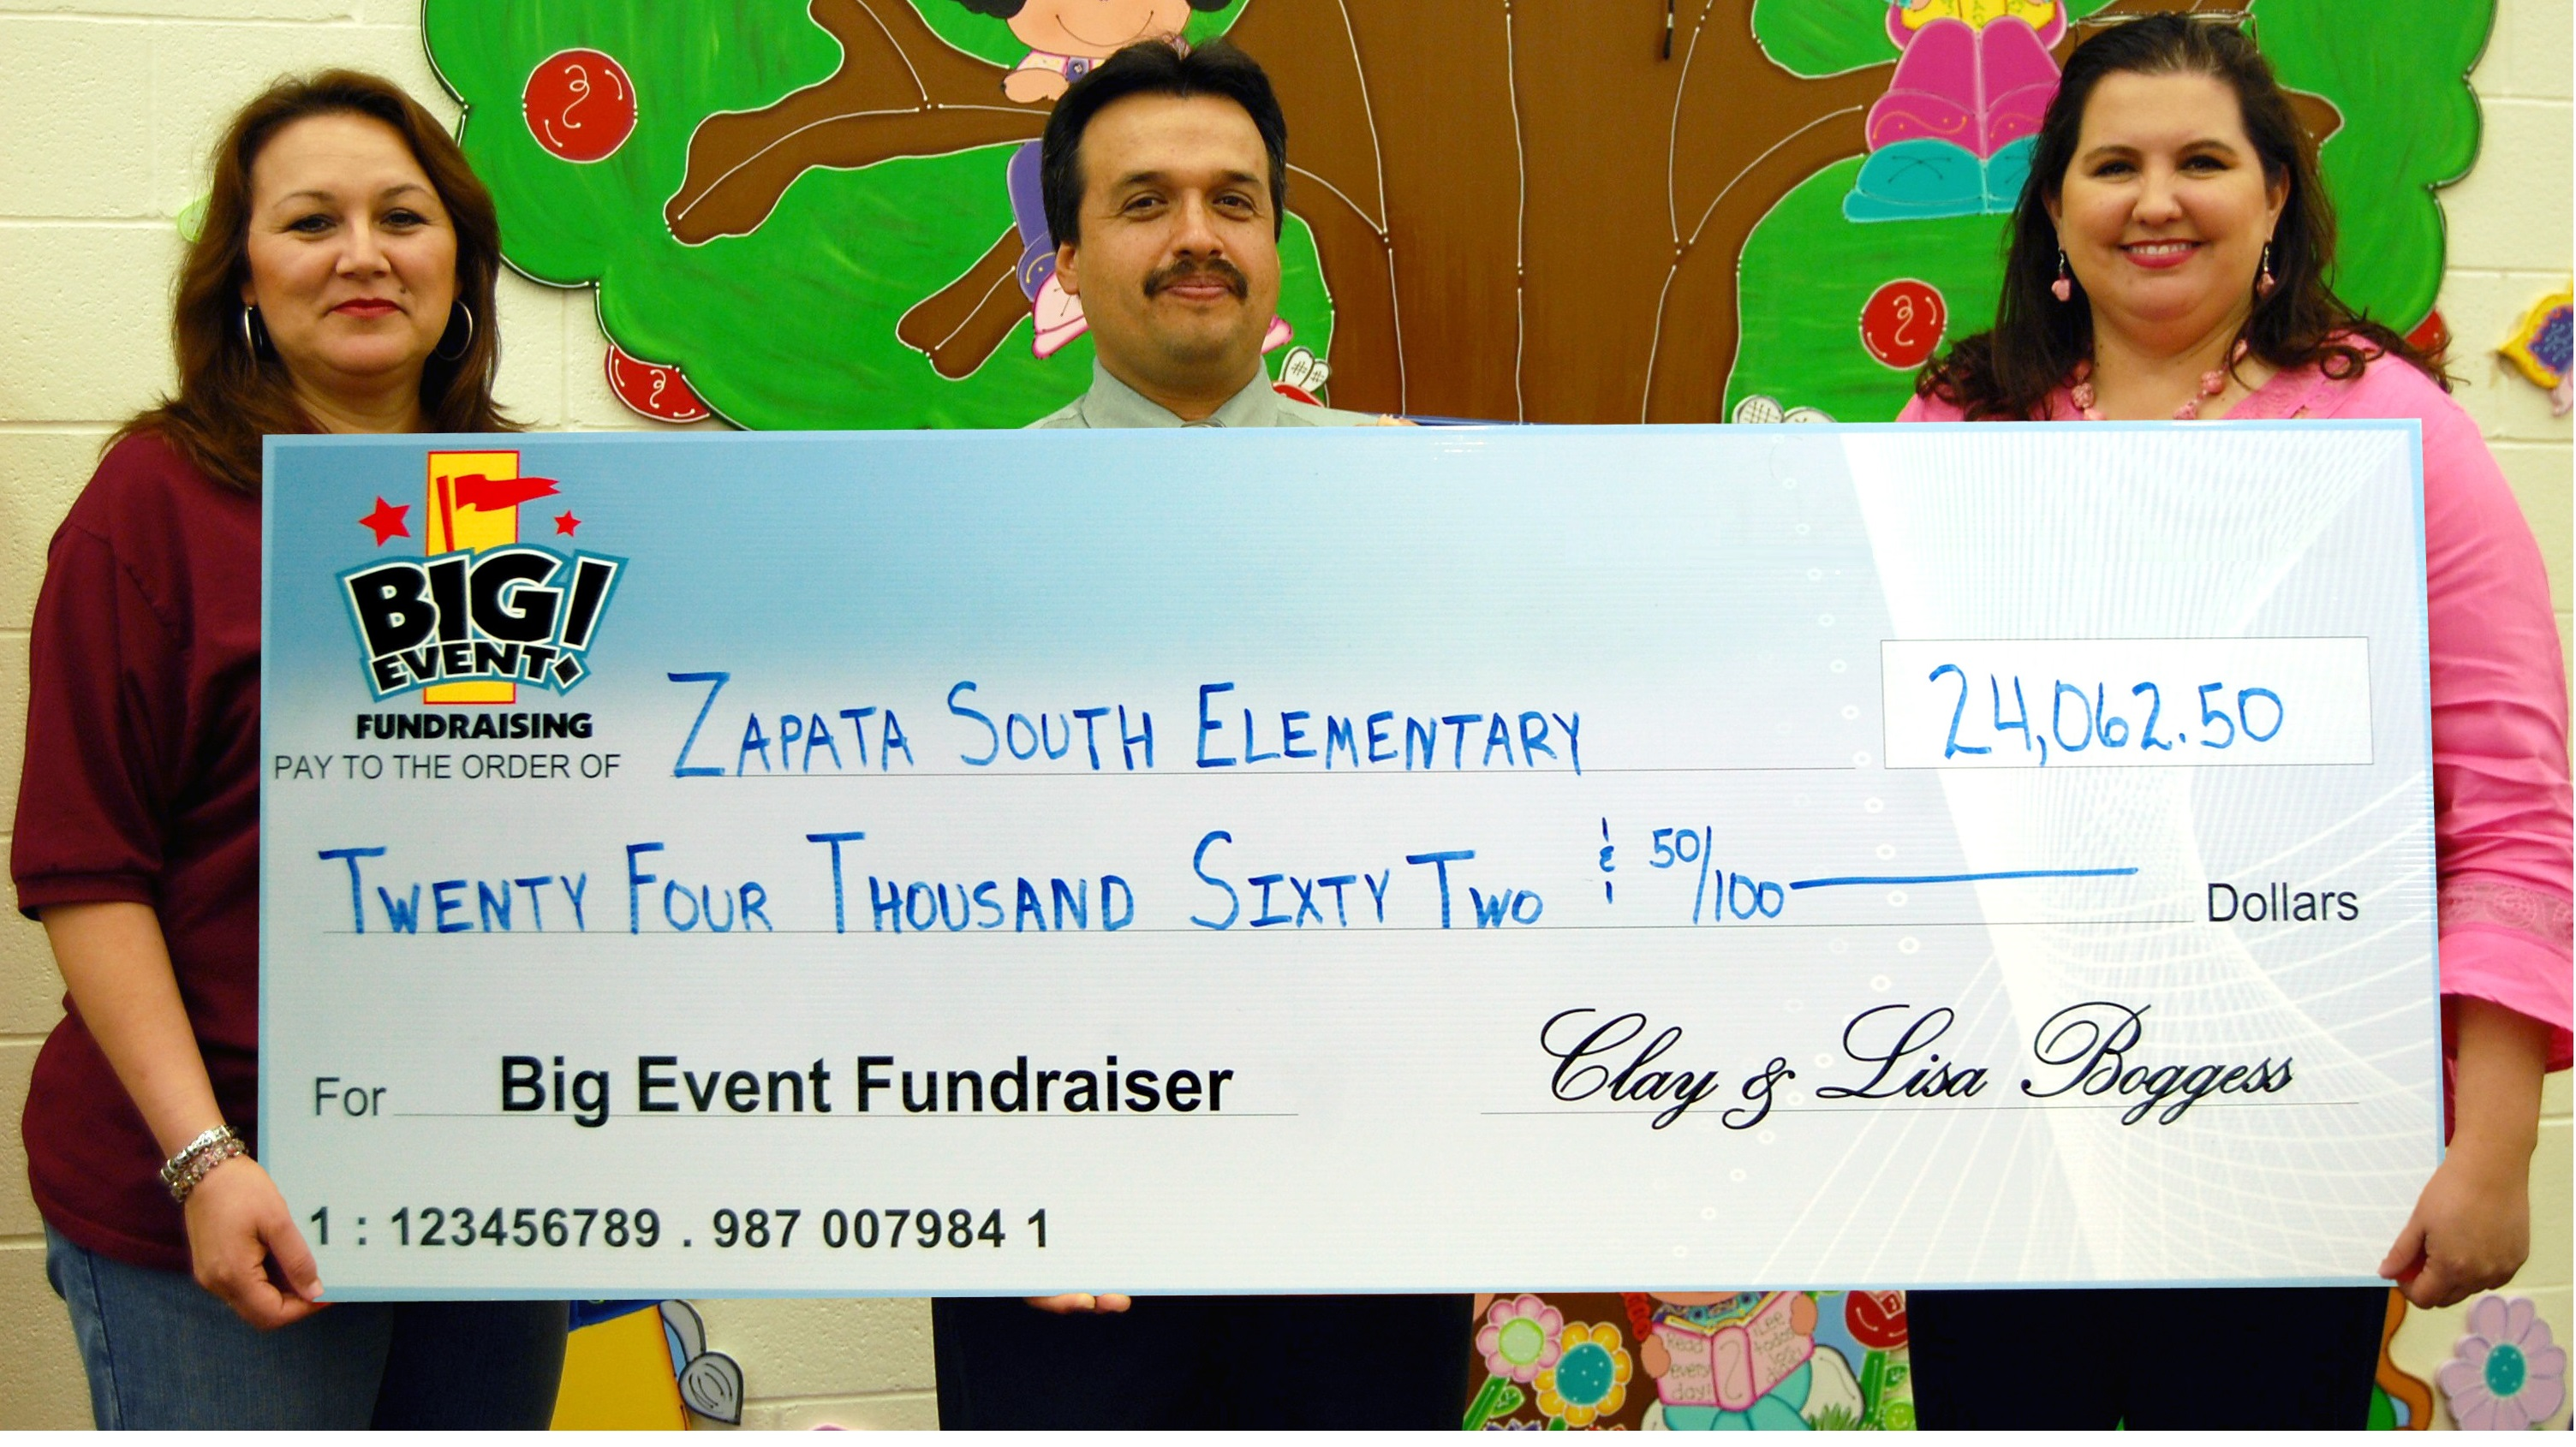 Zapata South Elementary School fundraising team holding check